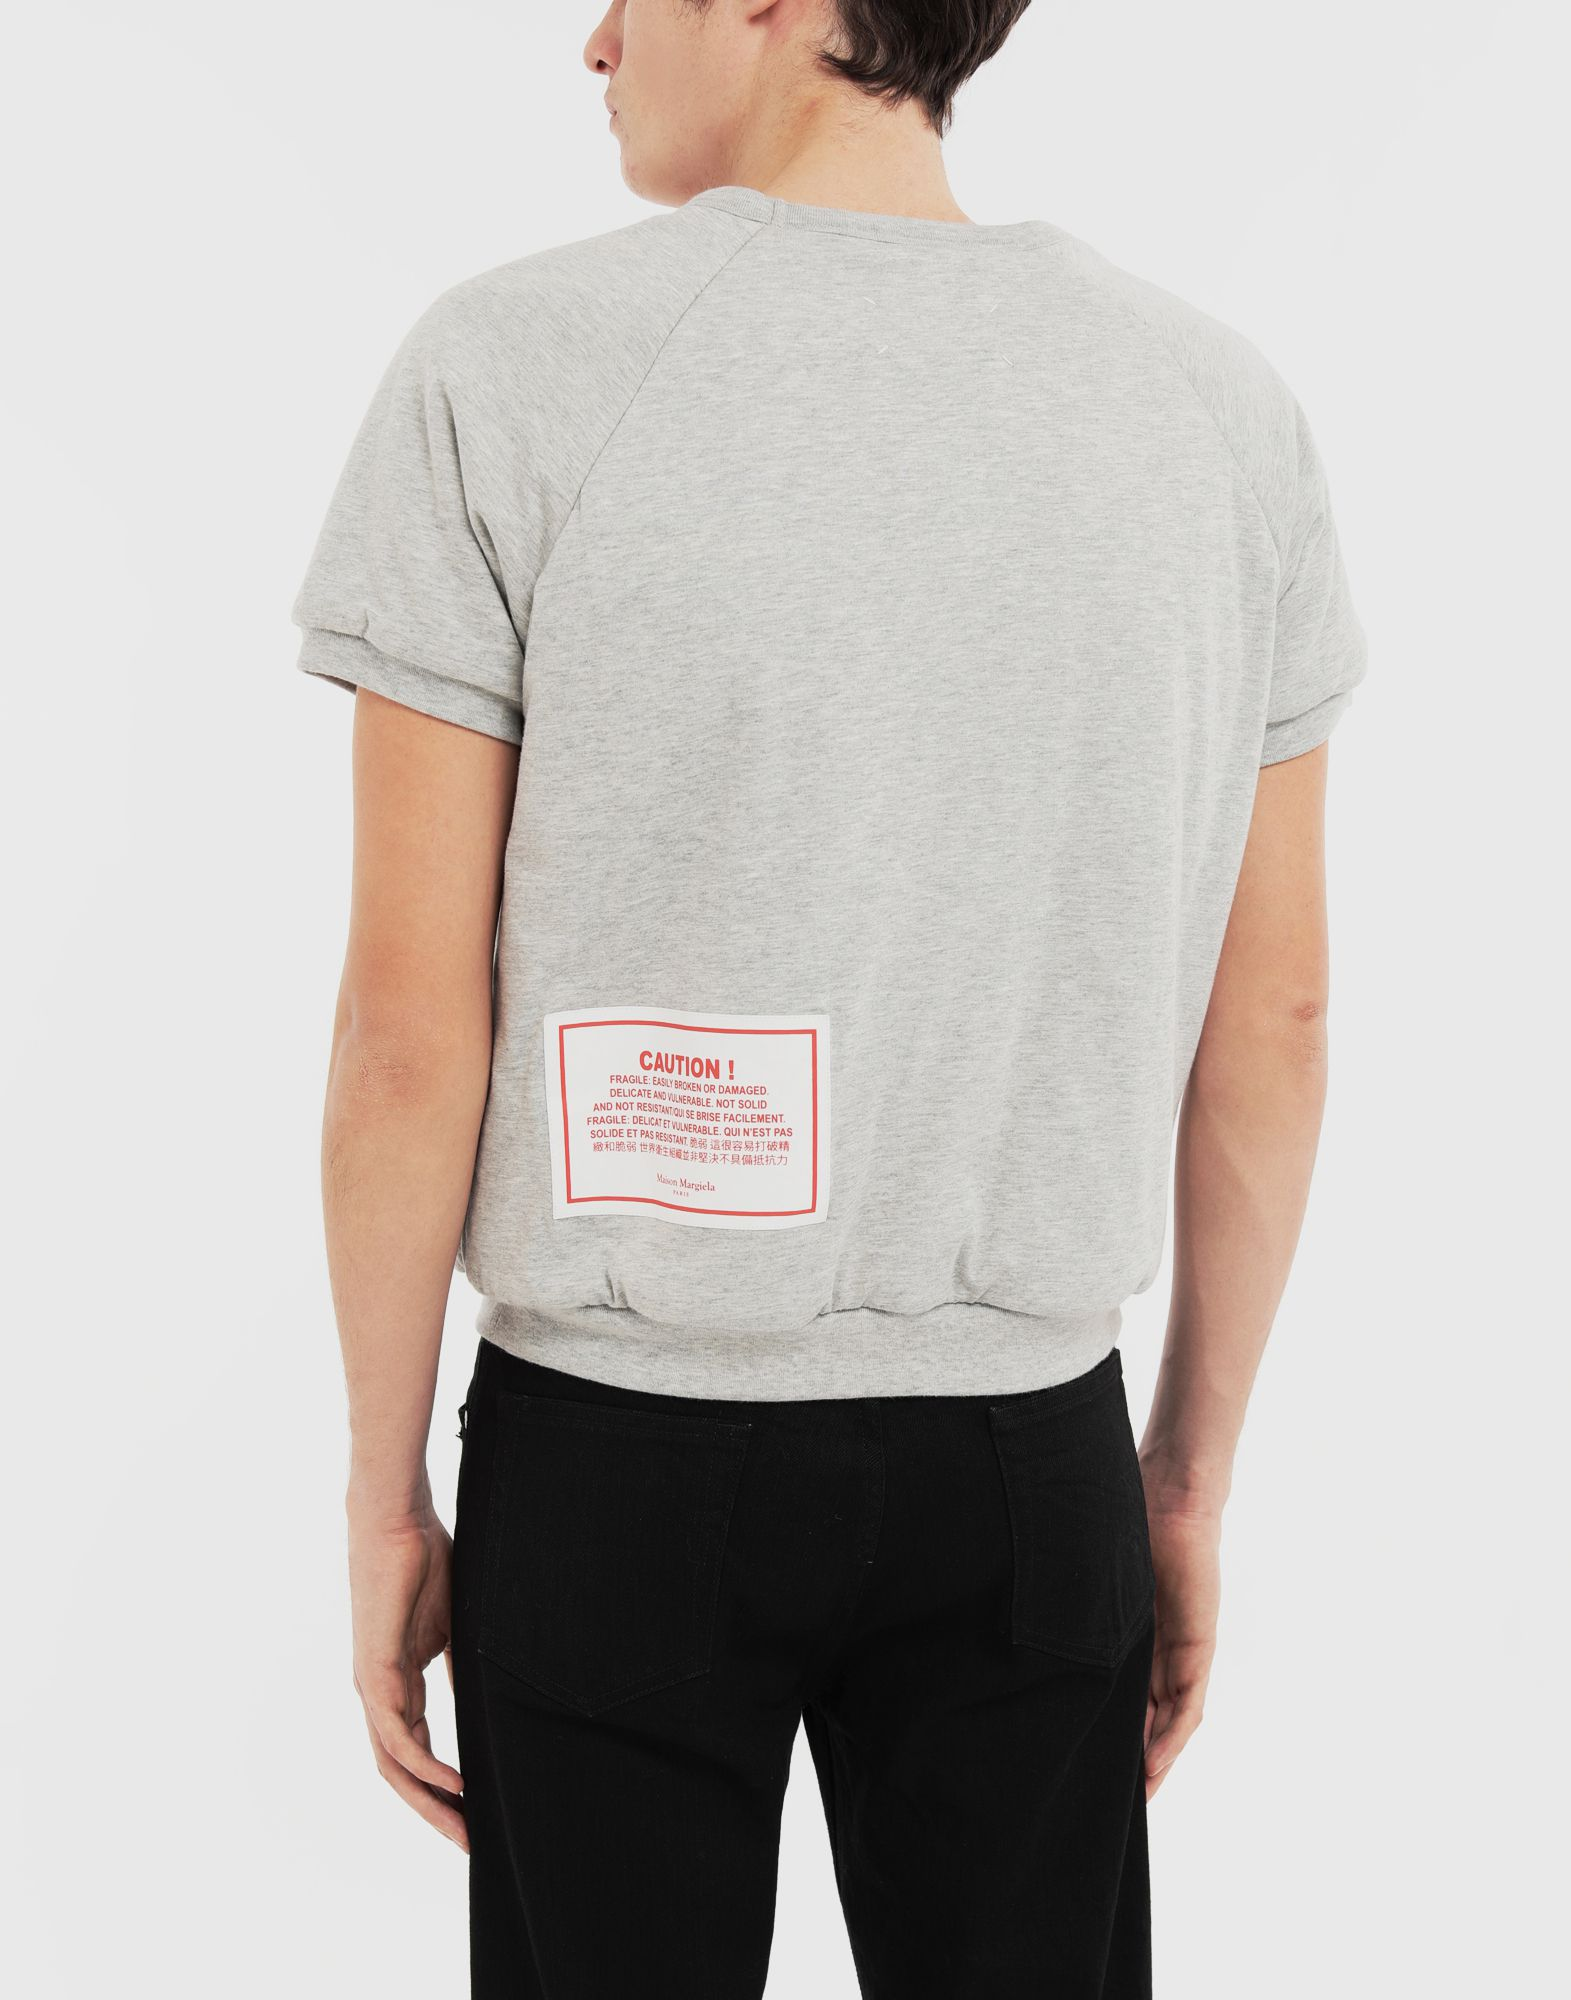 MAISON MARGIELA 'Caution' top Sweatshirt Man e